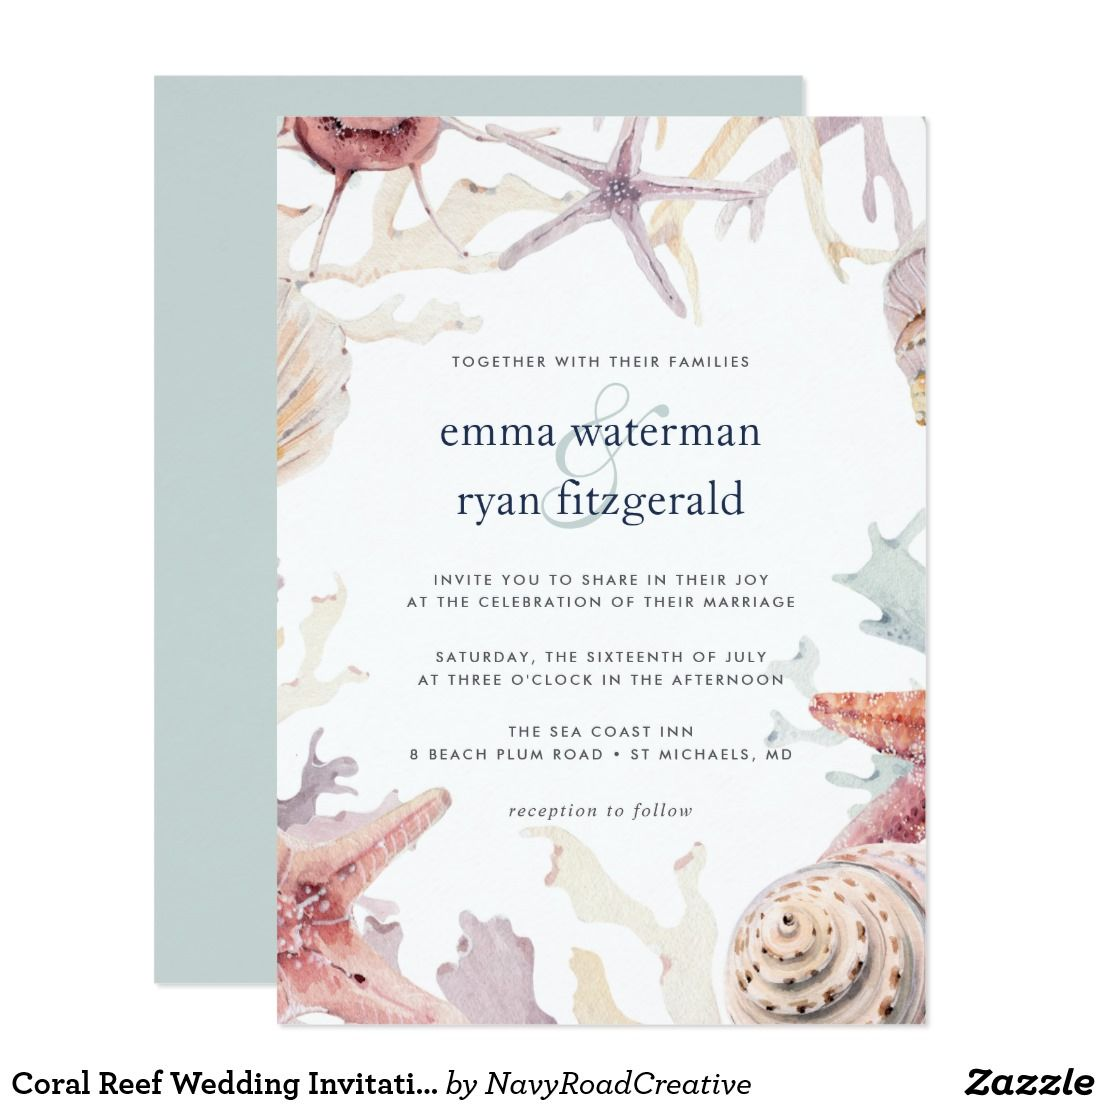 Coral Reef Wedding Invitation | Coral reefs, Invites wedding and Favors